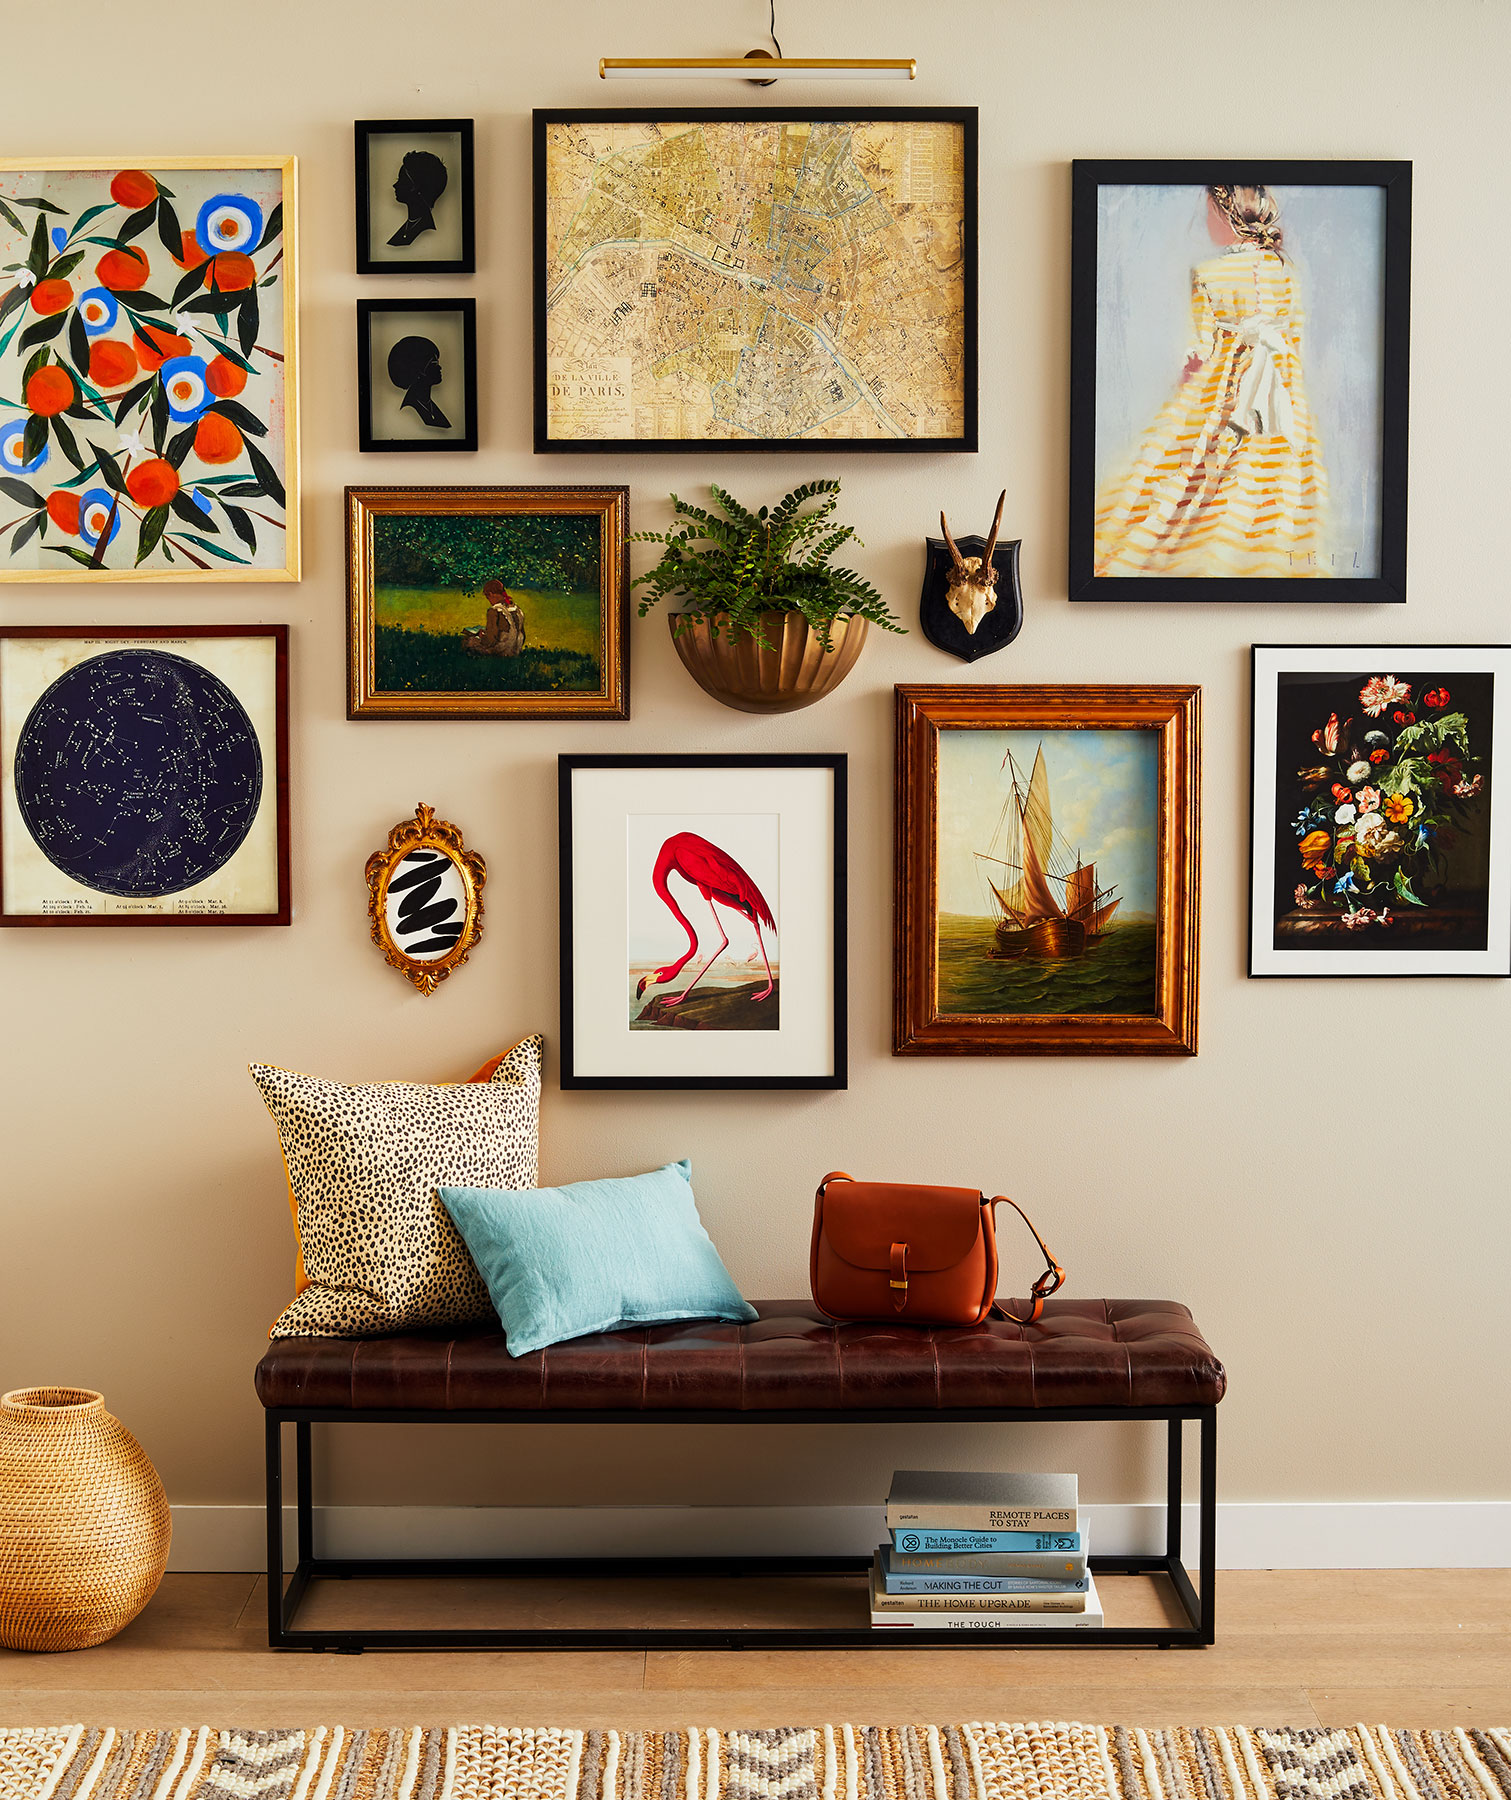 A Gallery Wall Layout Is The Way To Add Personality To Any Room